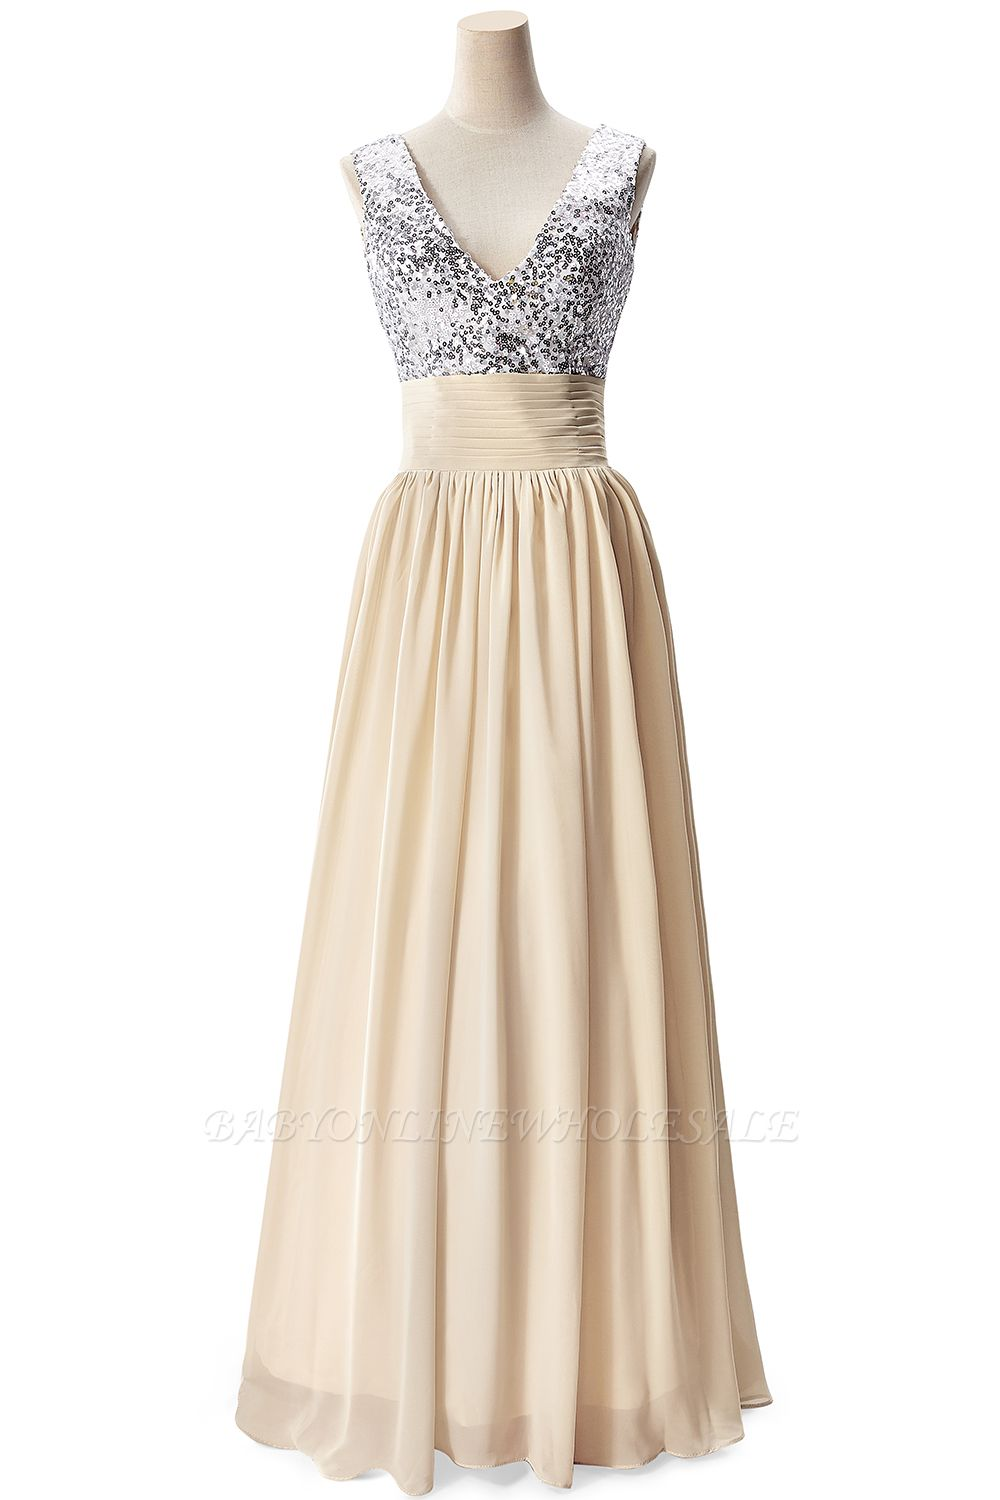 AISLINN | A-line V-neck Chiffon Party Dress With  Sequined